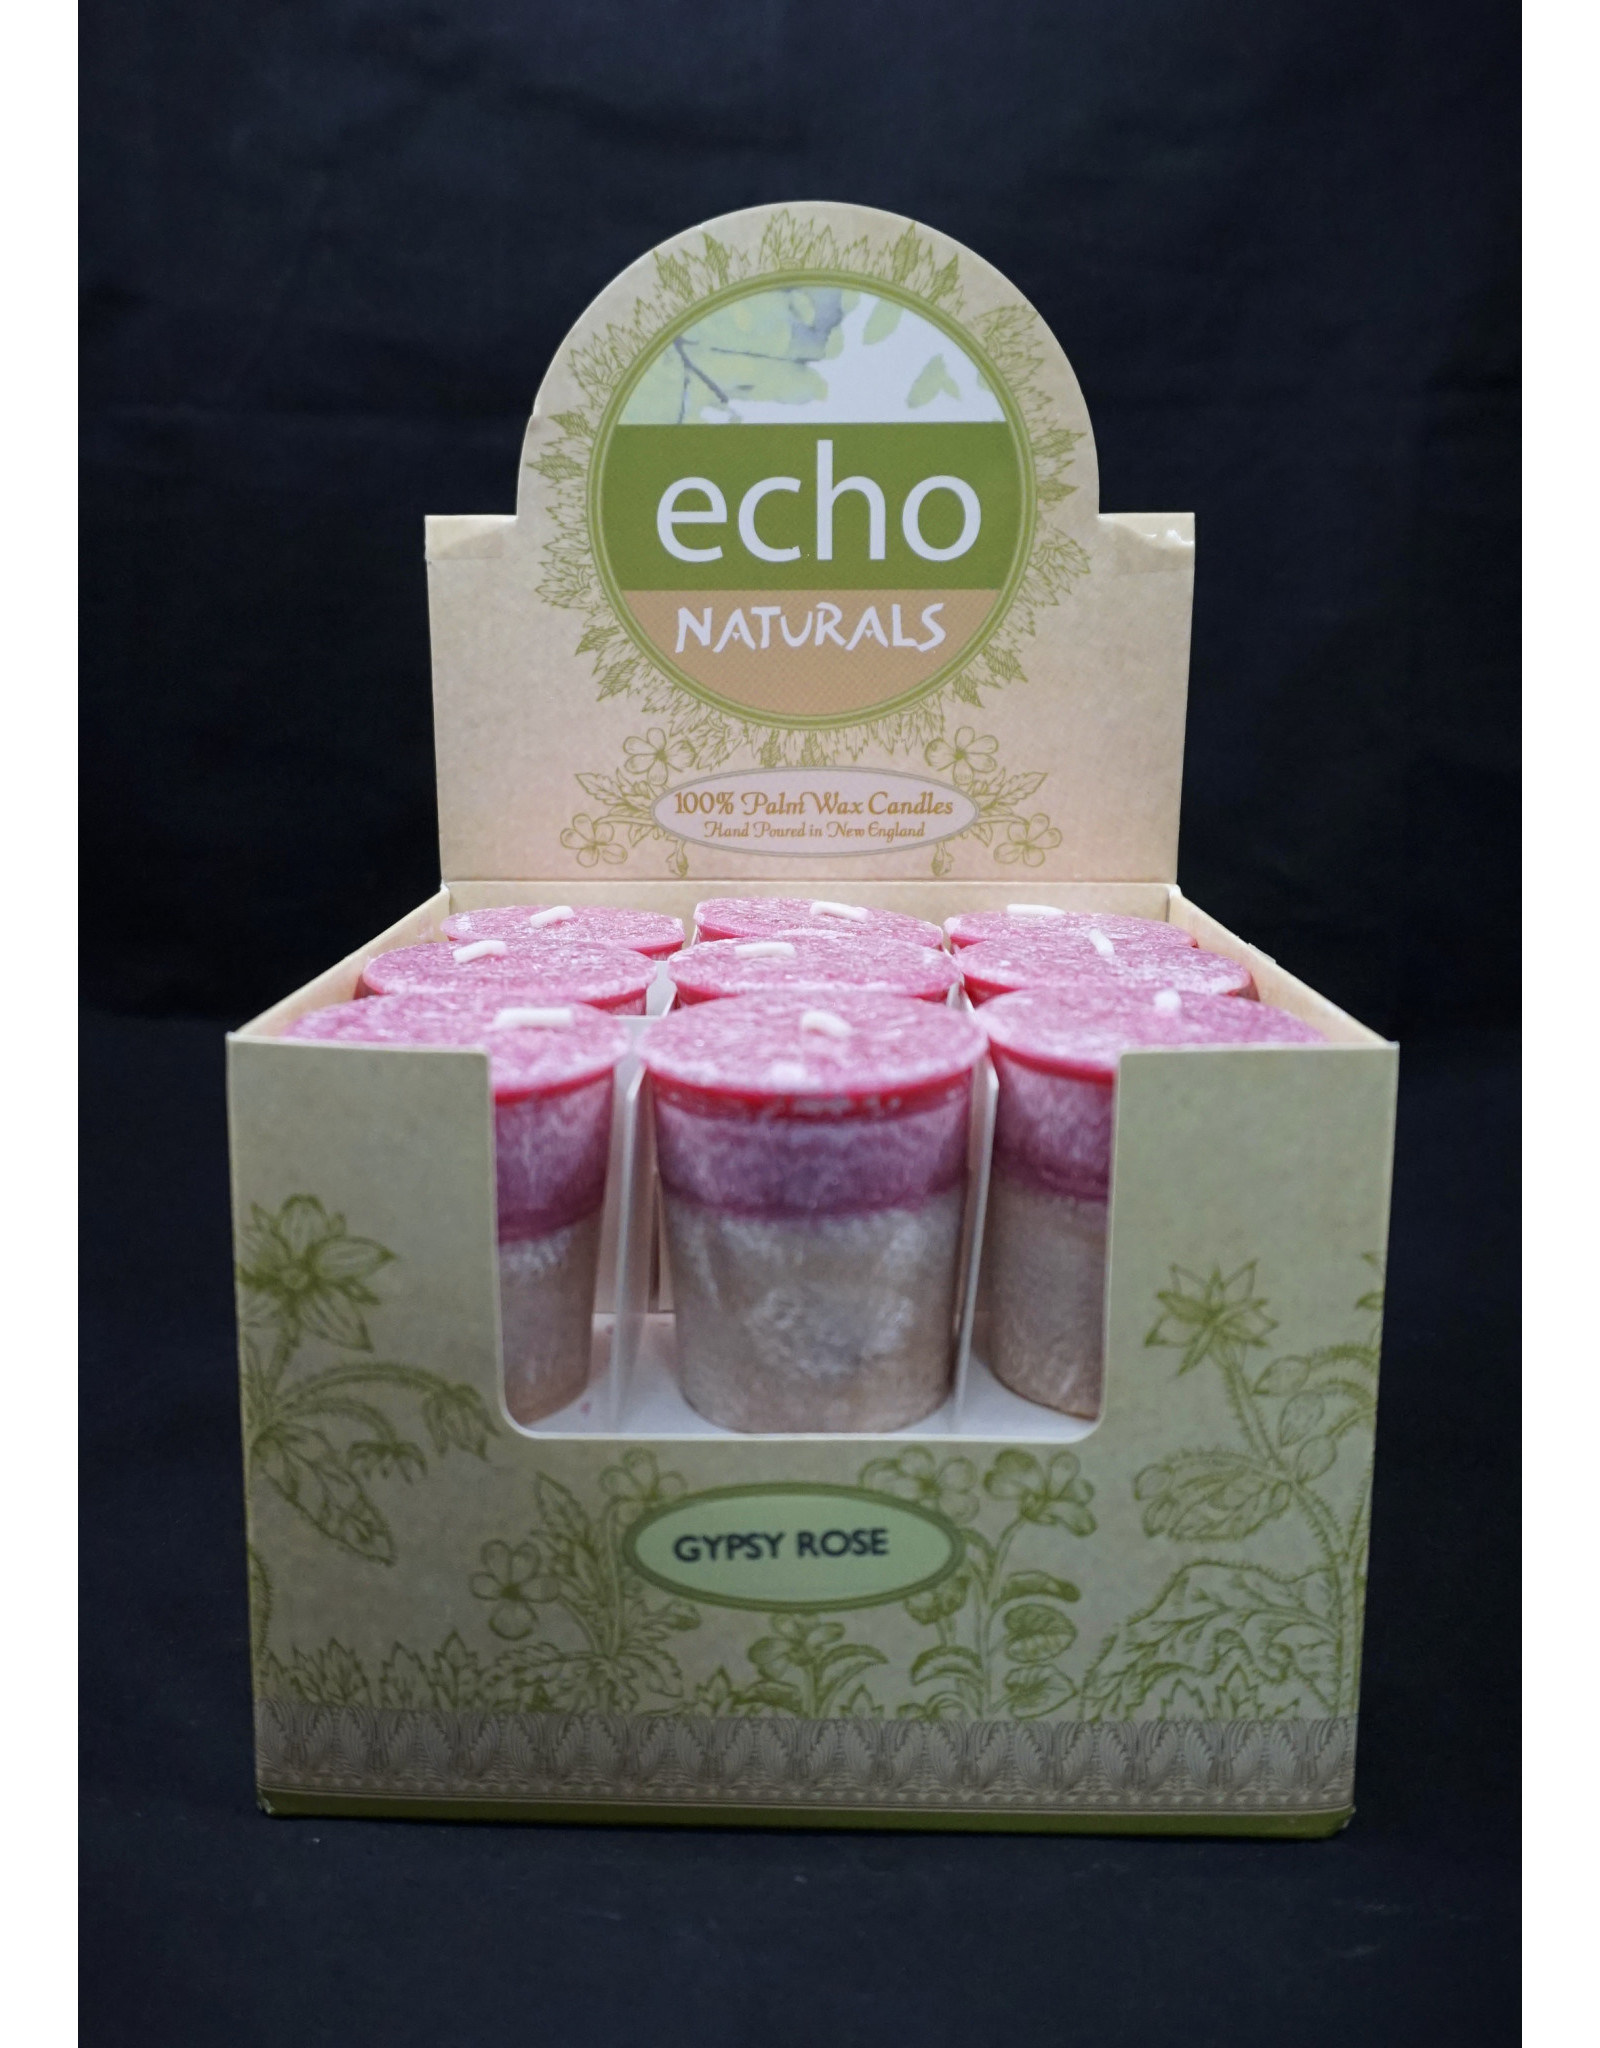 Echo Naturals Votive Candle - Gypsy Rose